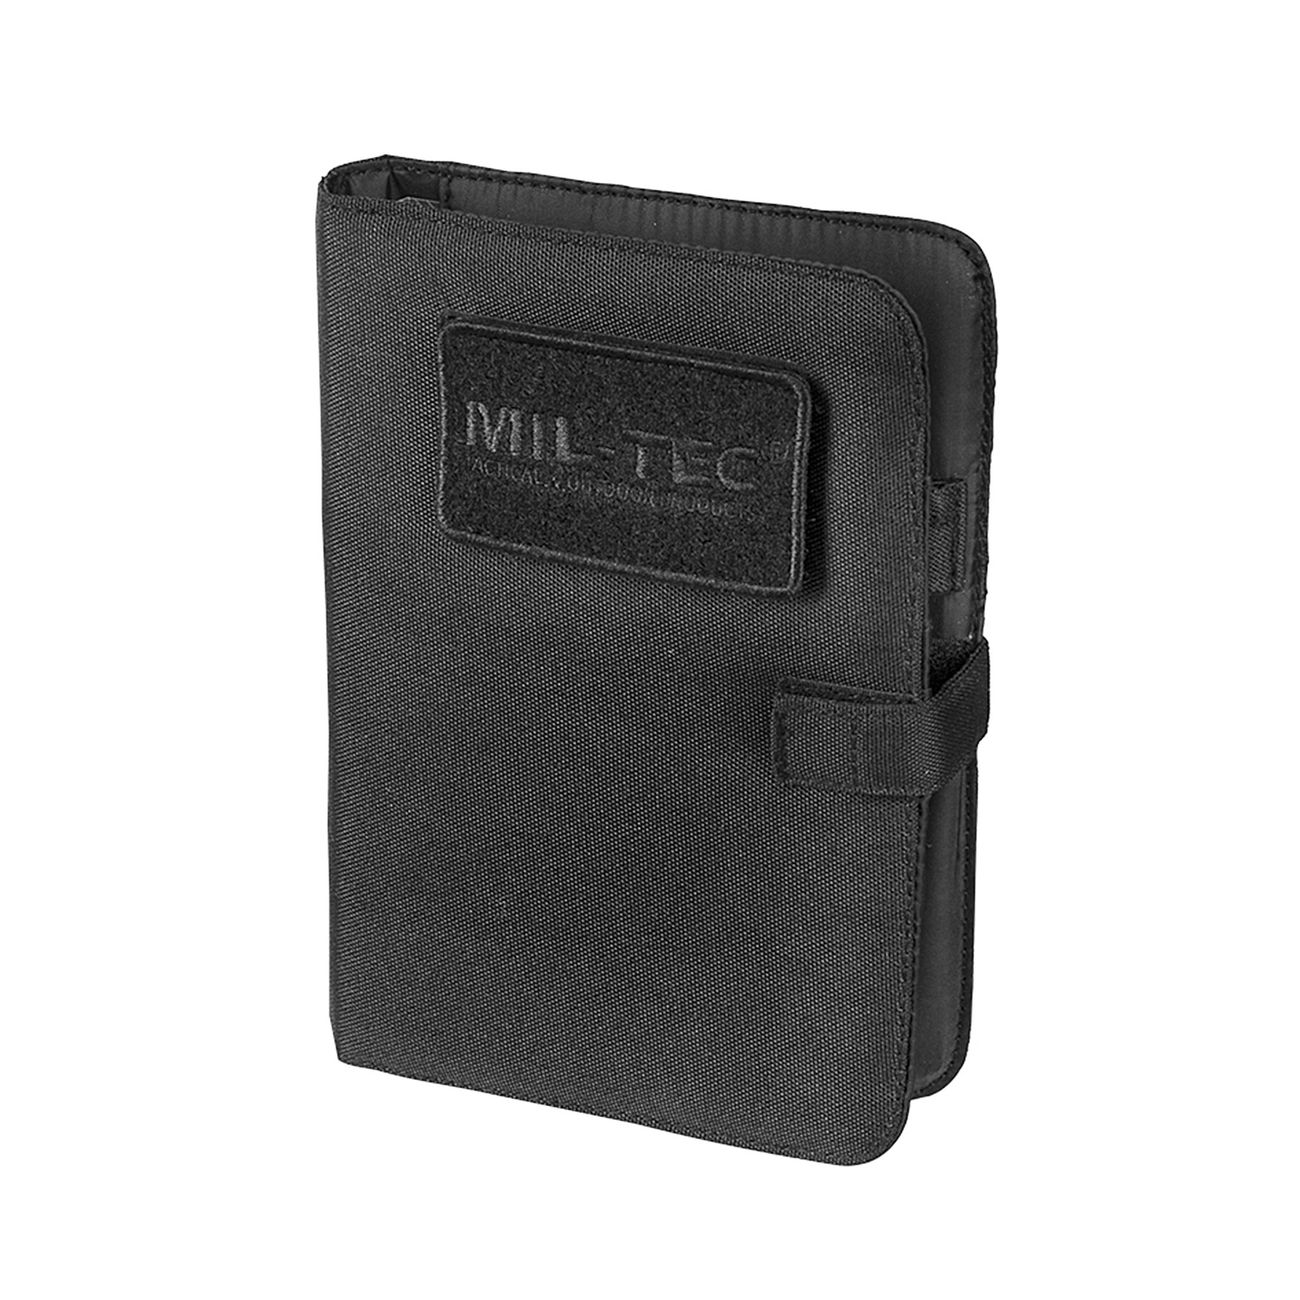 Mil-Tec Tactical Notizbuch Small schwarz 0